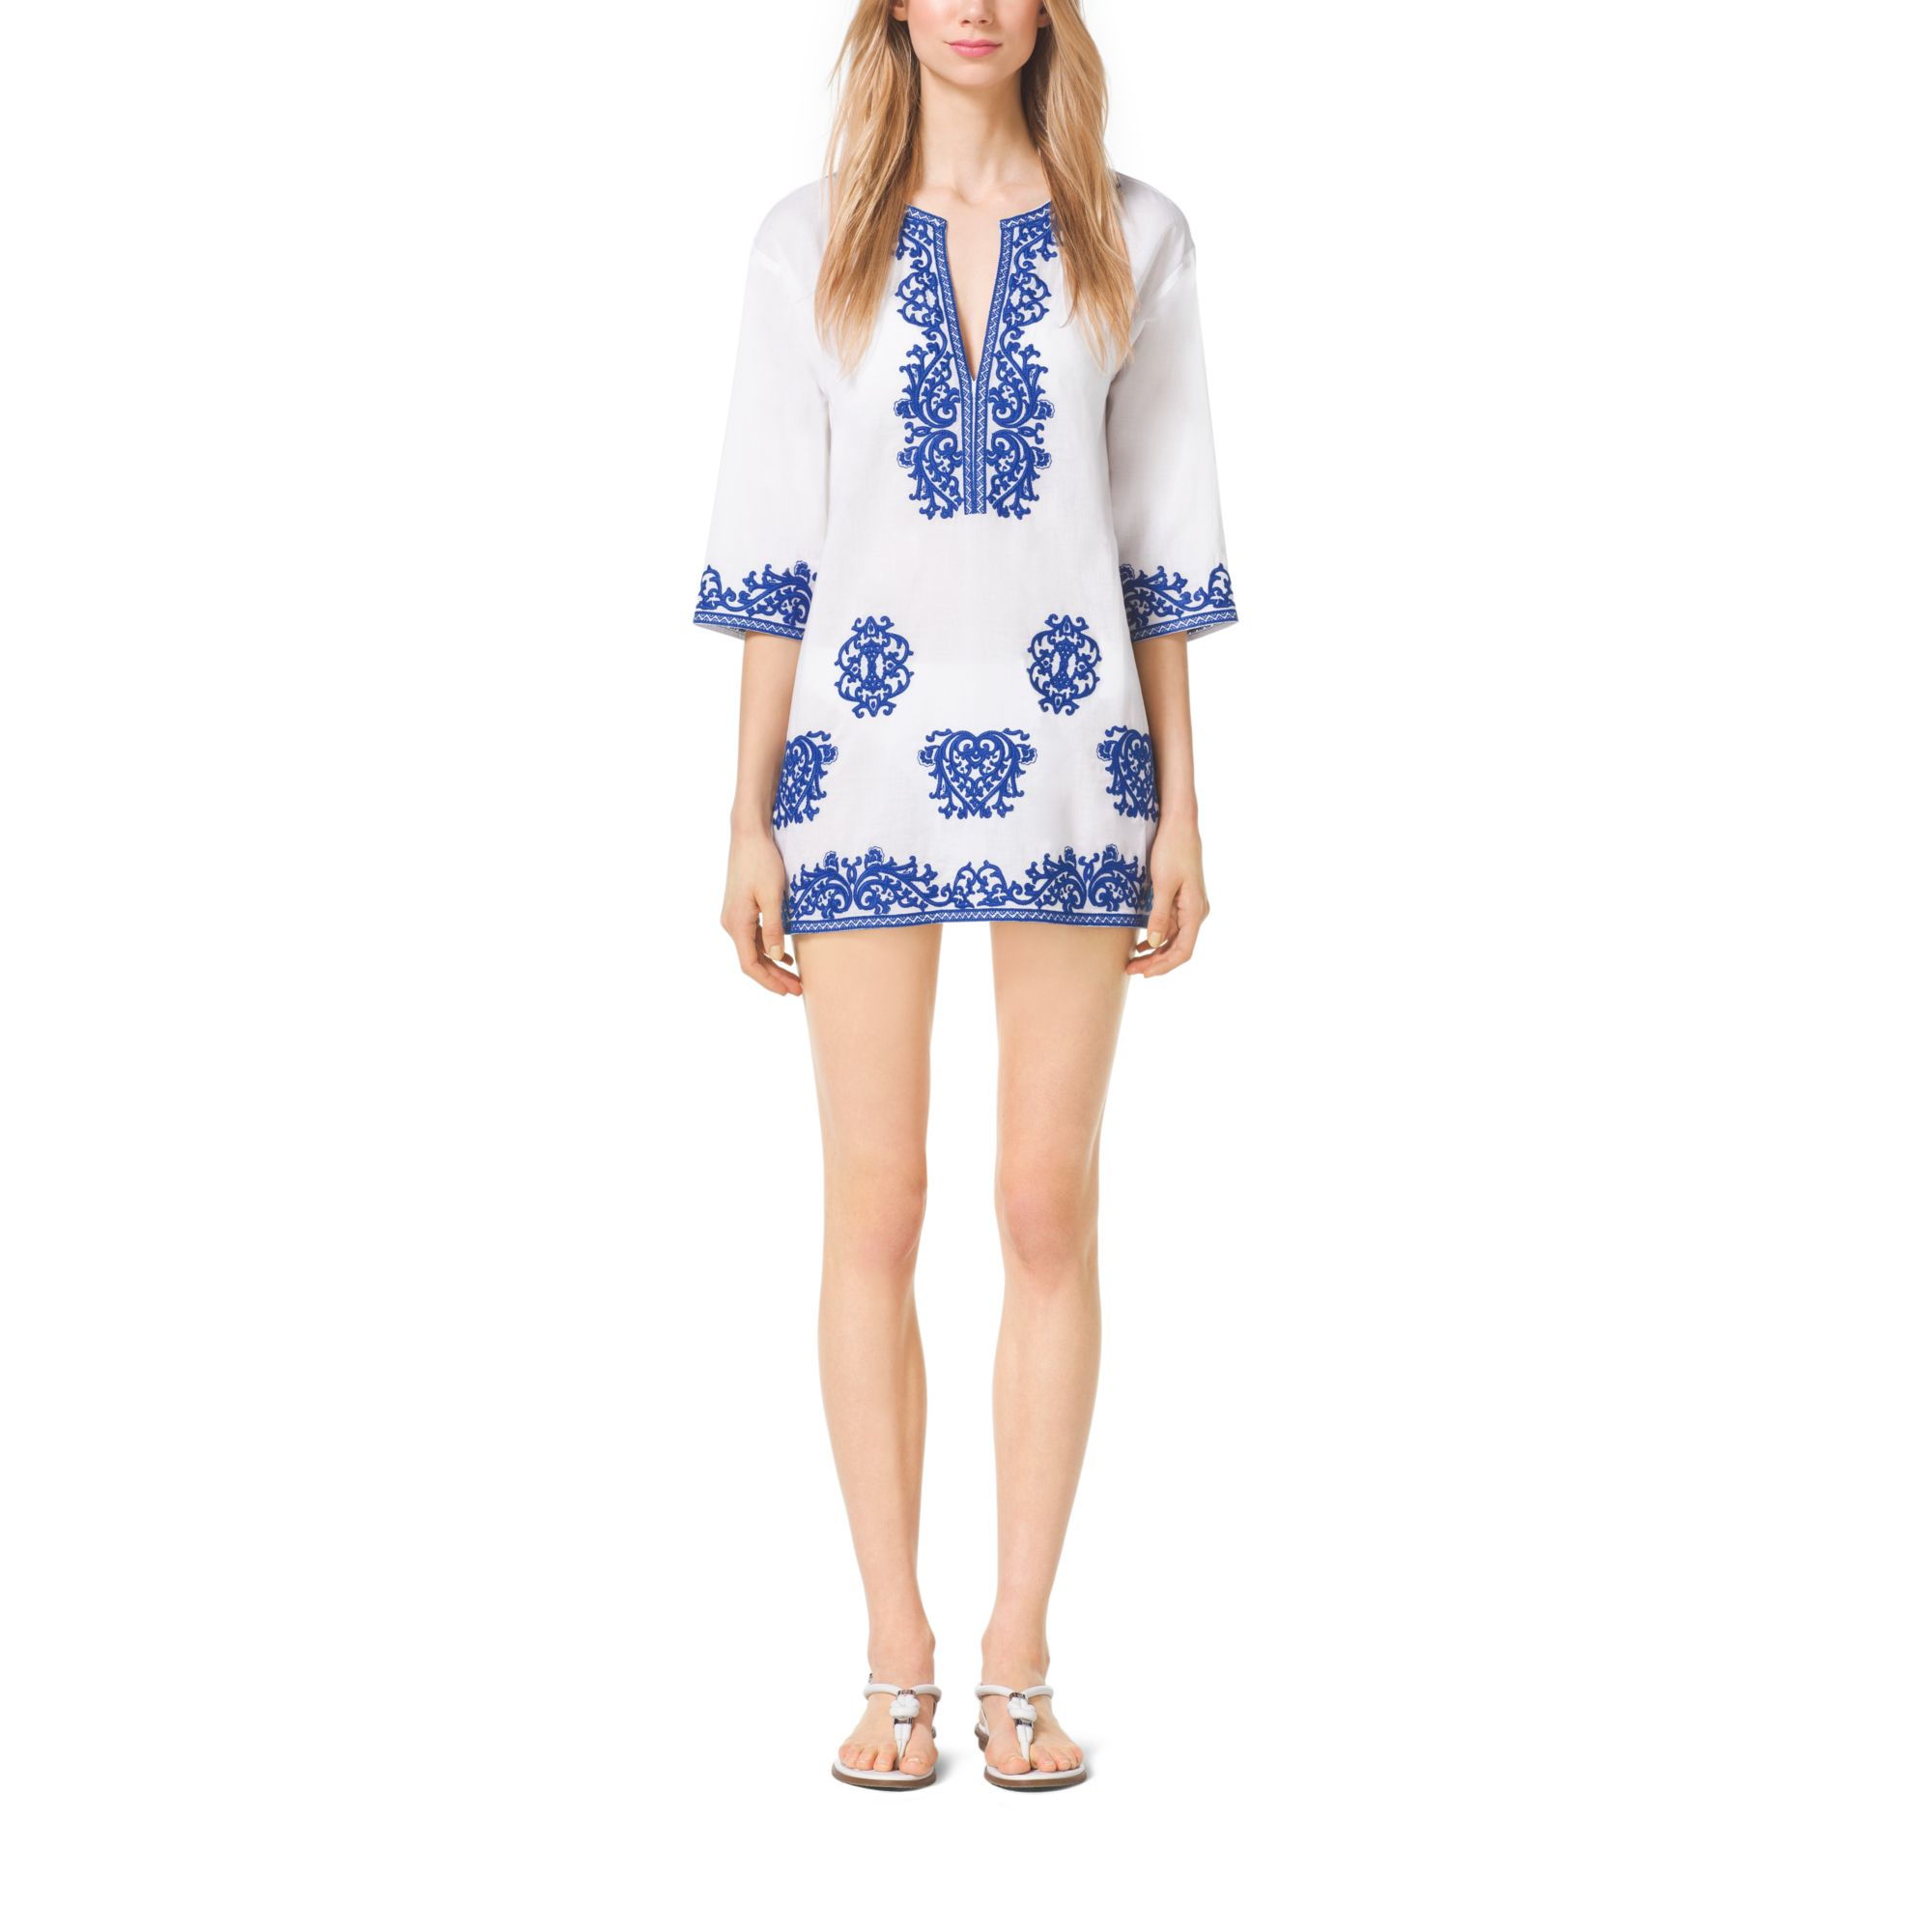 e925fbbac50 Lyst - Michael Kors Embroidered Cotton Tunic in White